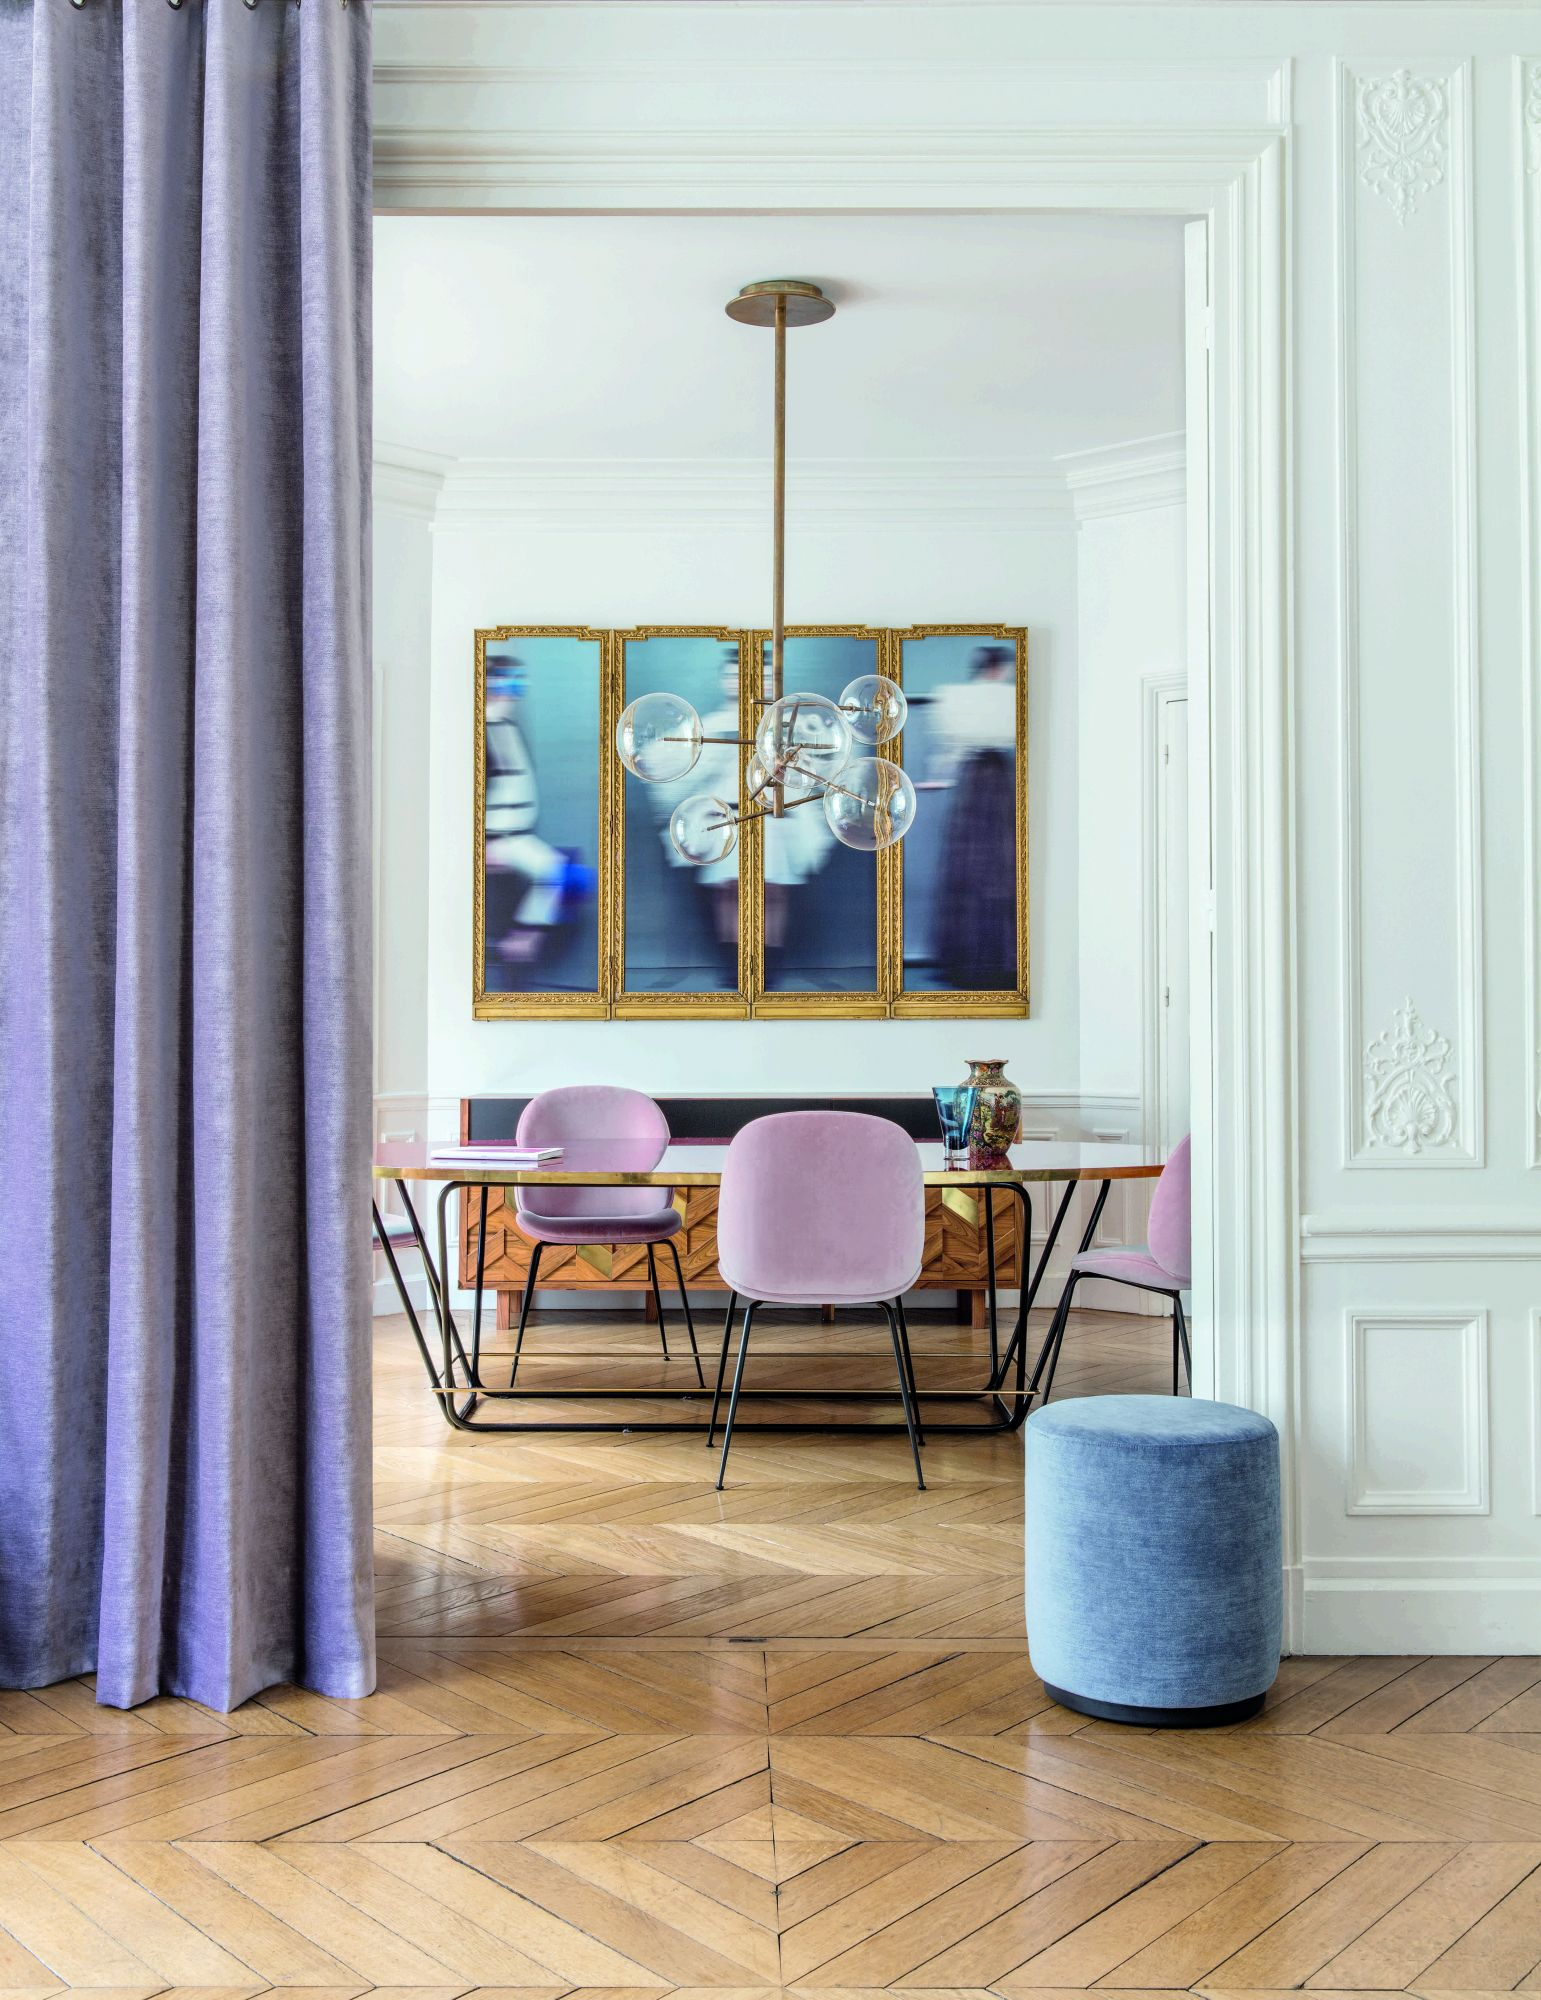 8 Tactile Ways To Transform Any Space With Fabric